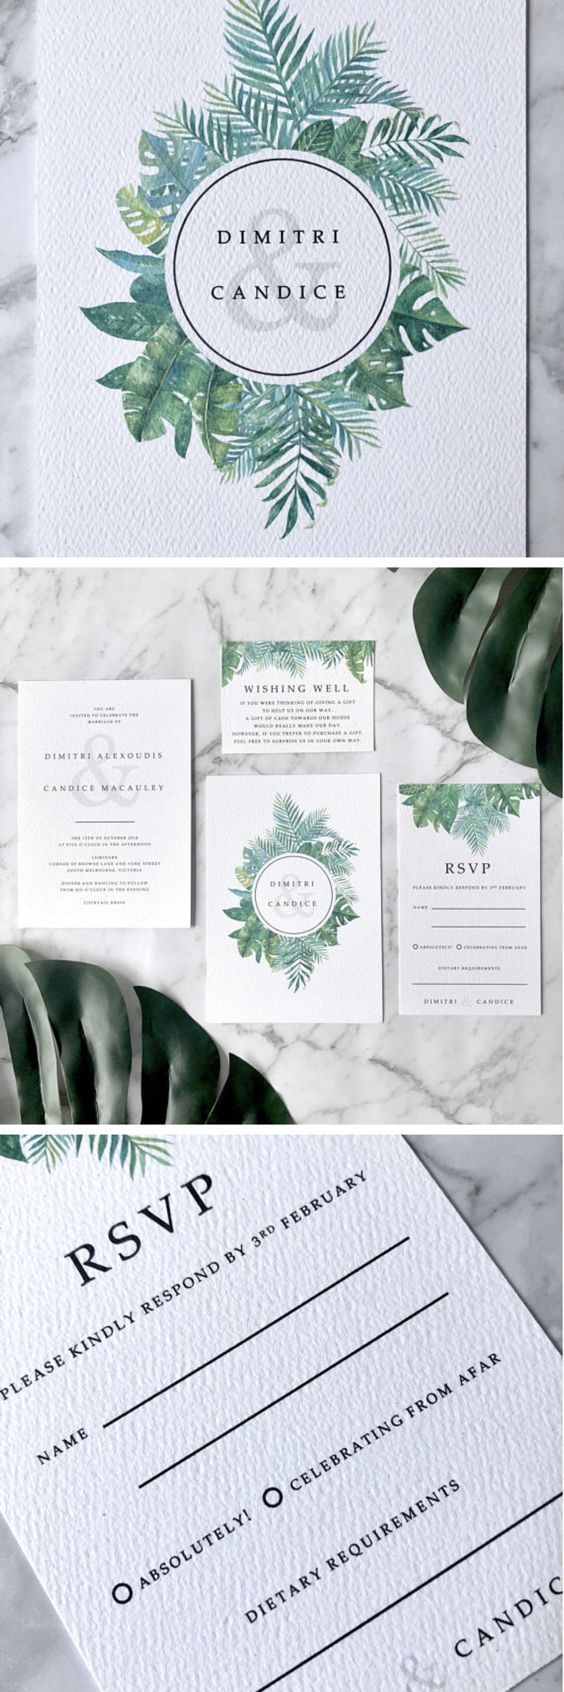 love quotes for invitations%0A Modern Boho Wedding Invitation Suite  perfect for a Tropical Lush Greenery  theme  Made to Order and fully customisable to include any wording you  would